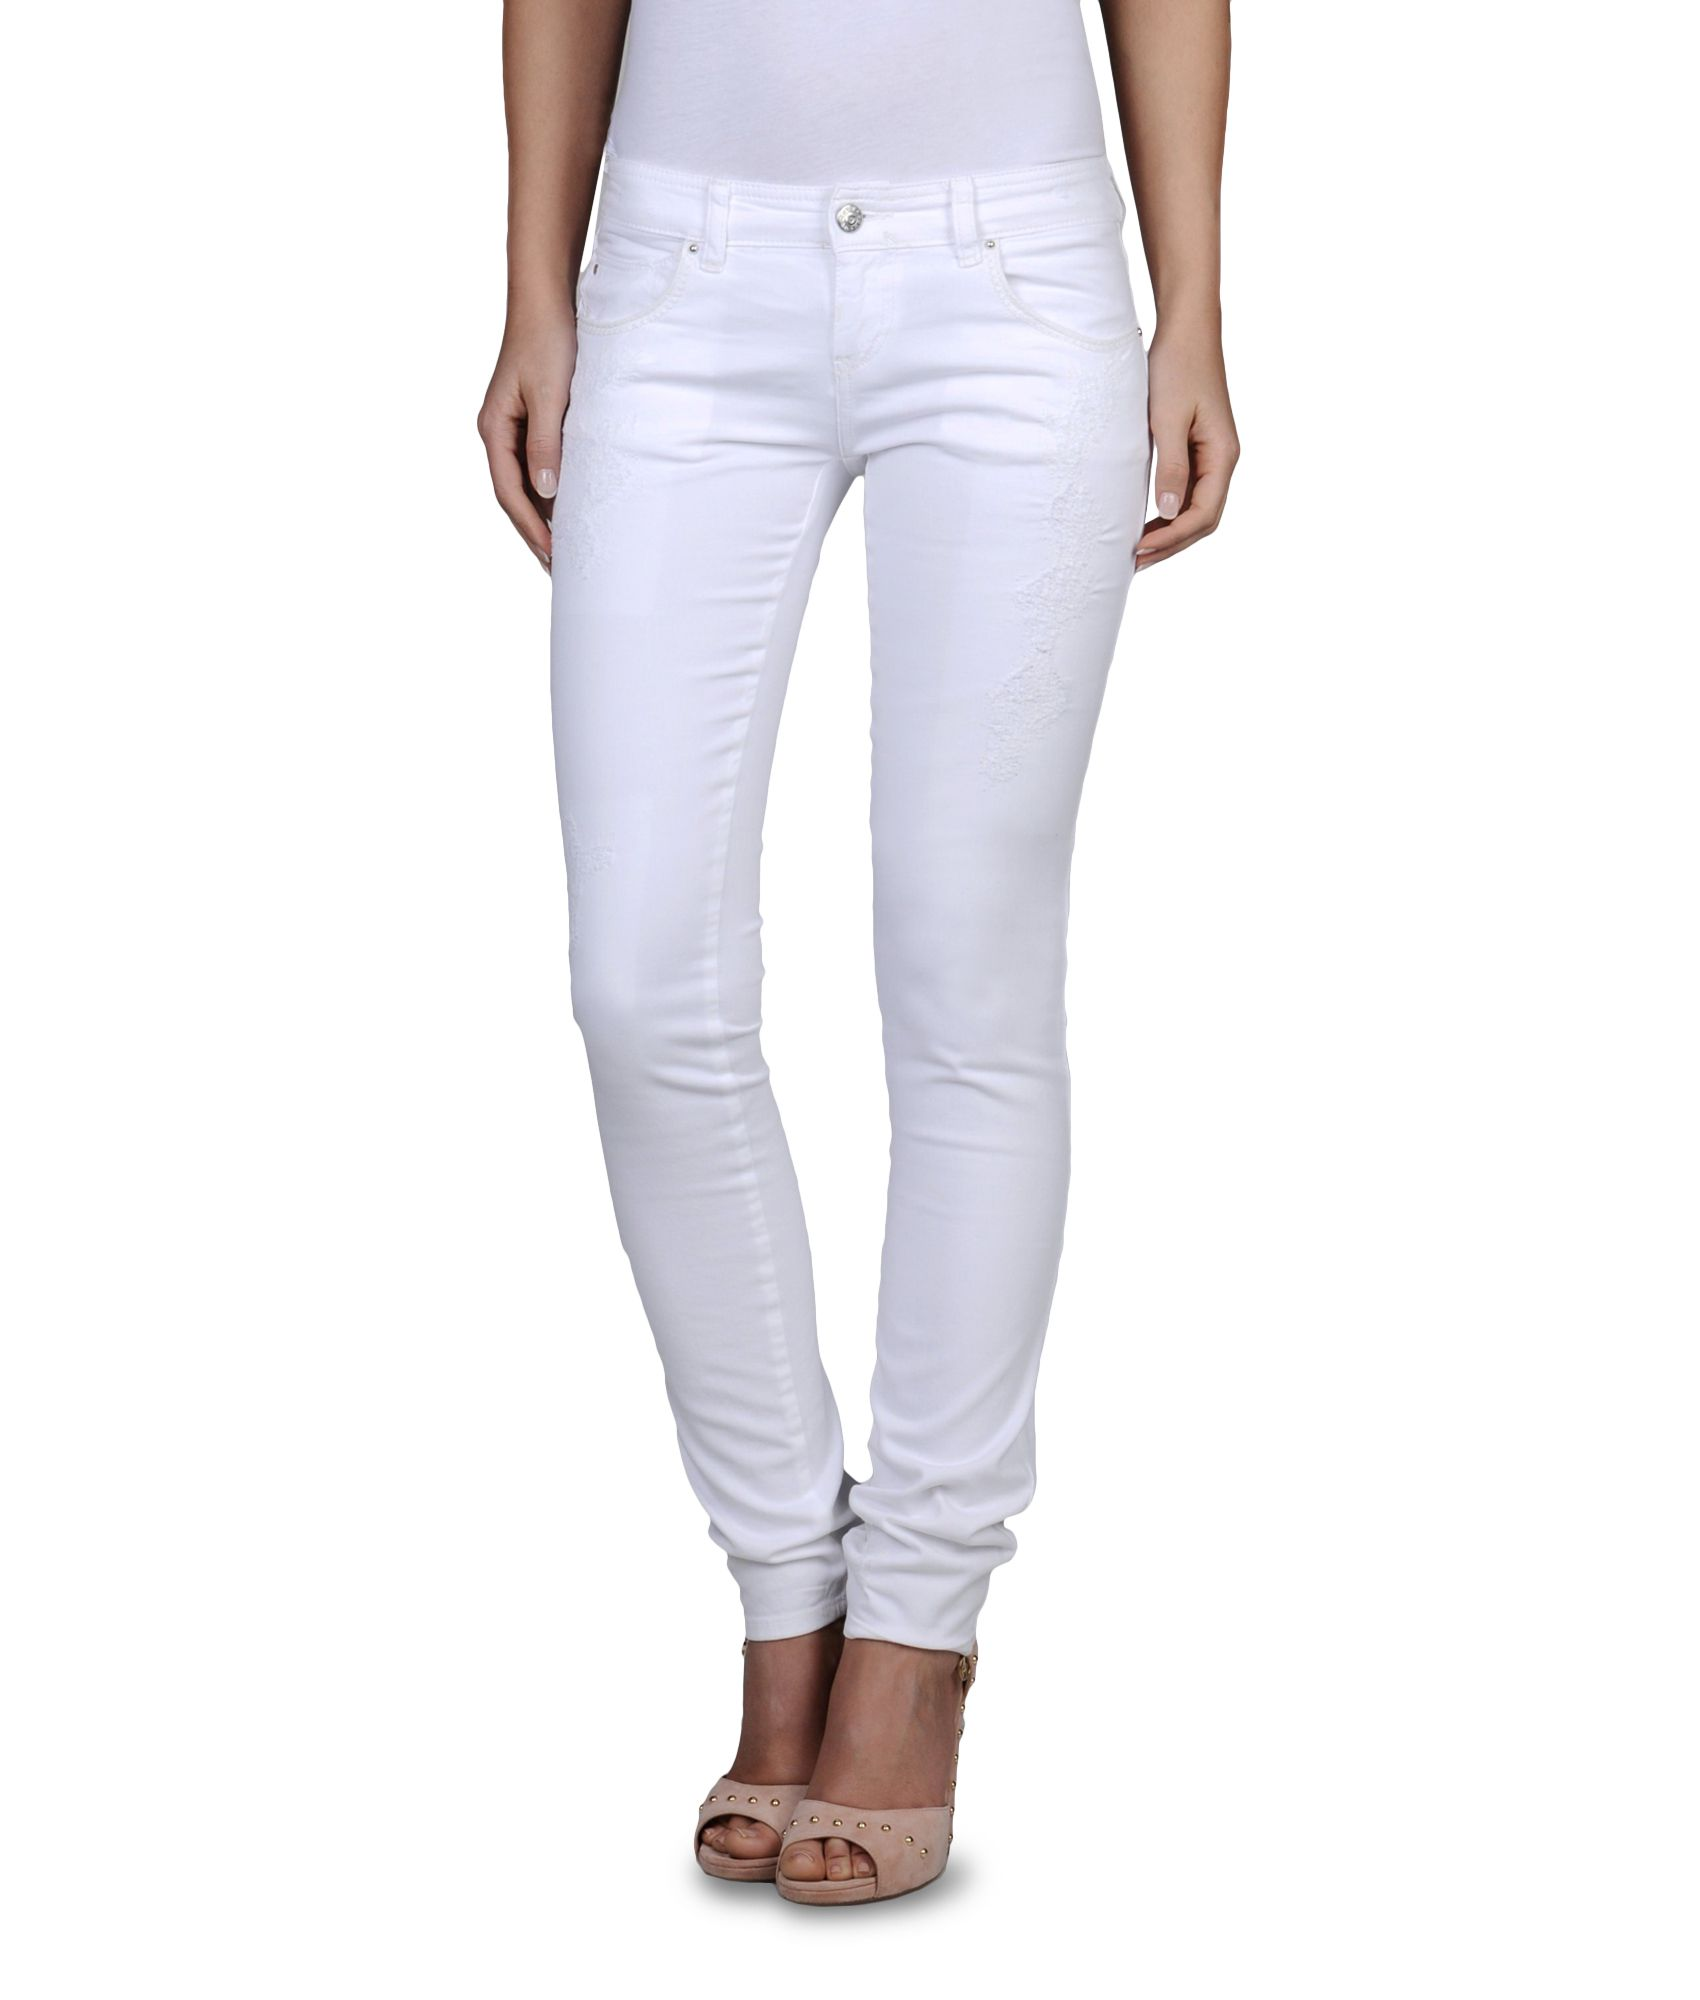 4d03a93eae Lyst - Armani Jeans Stretch Drill Ripped Skinny Jeans in White